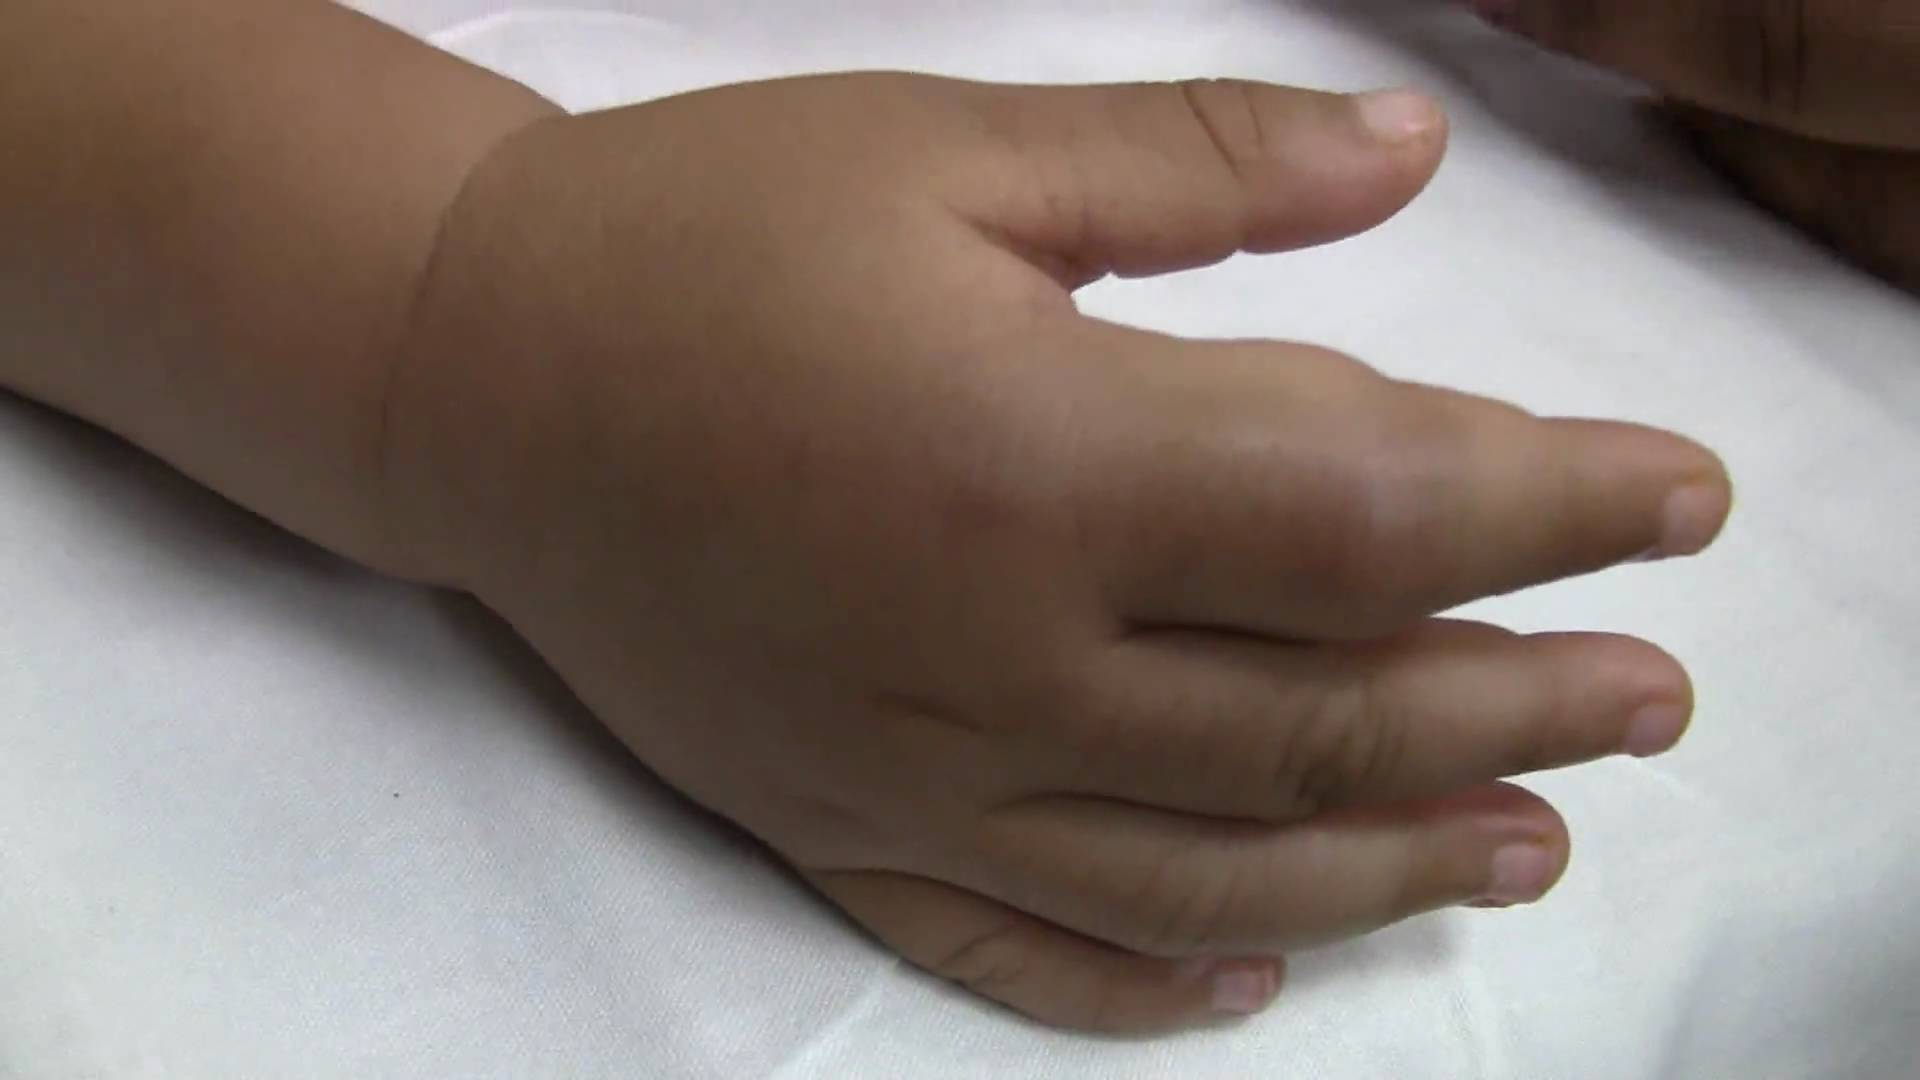 Swelling in the hands of a patient with sickle cell disease (source)